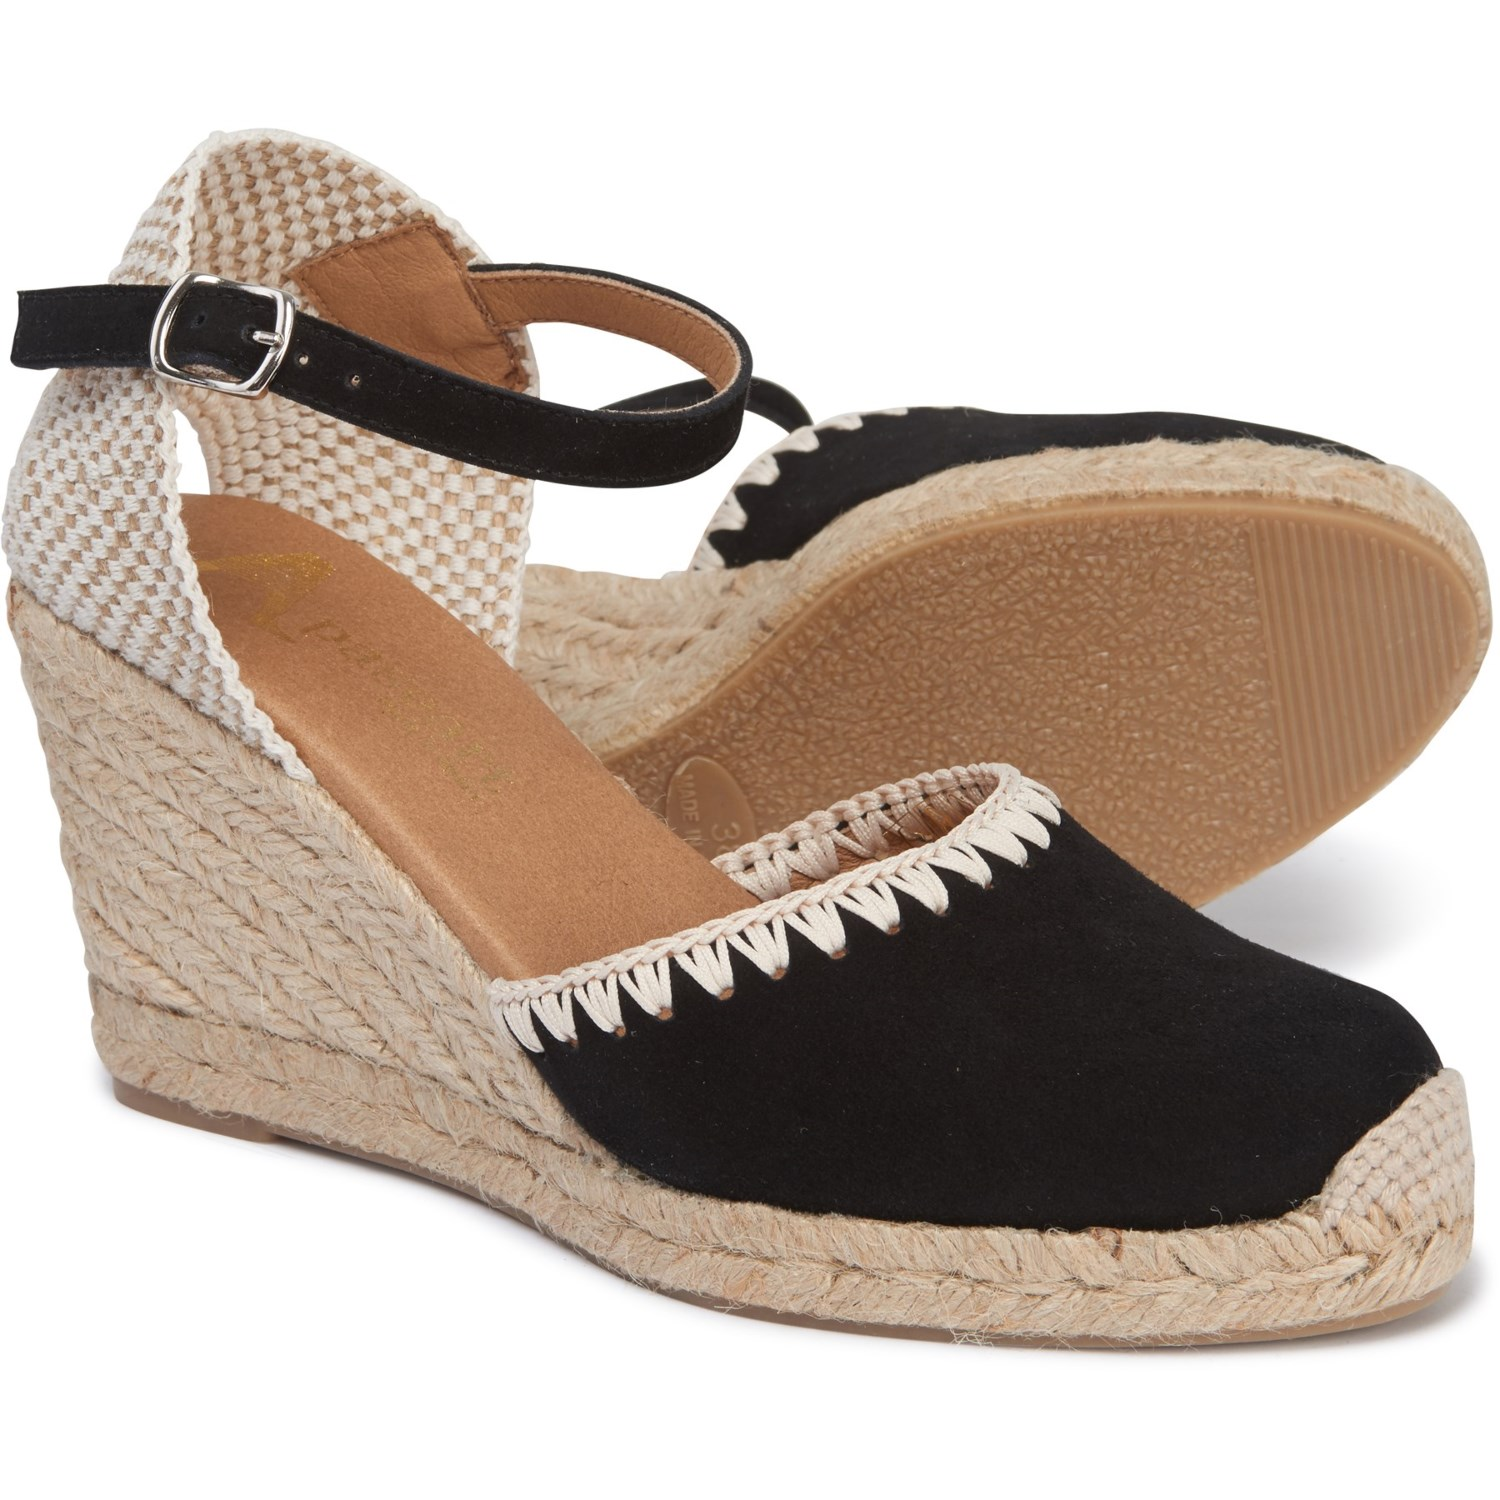 0f92cc1eab0 PASEART Made in Spain Embroidered Wedge Espadrilles - Suede (For Women)